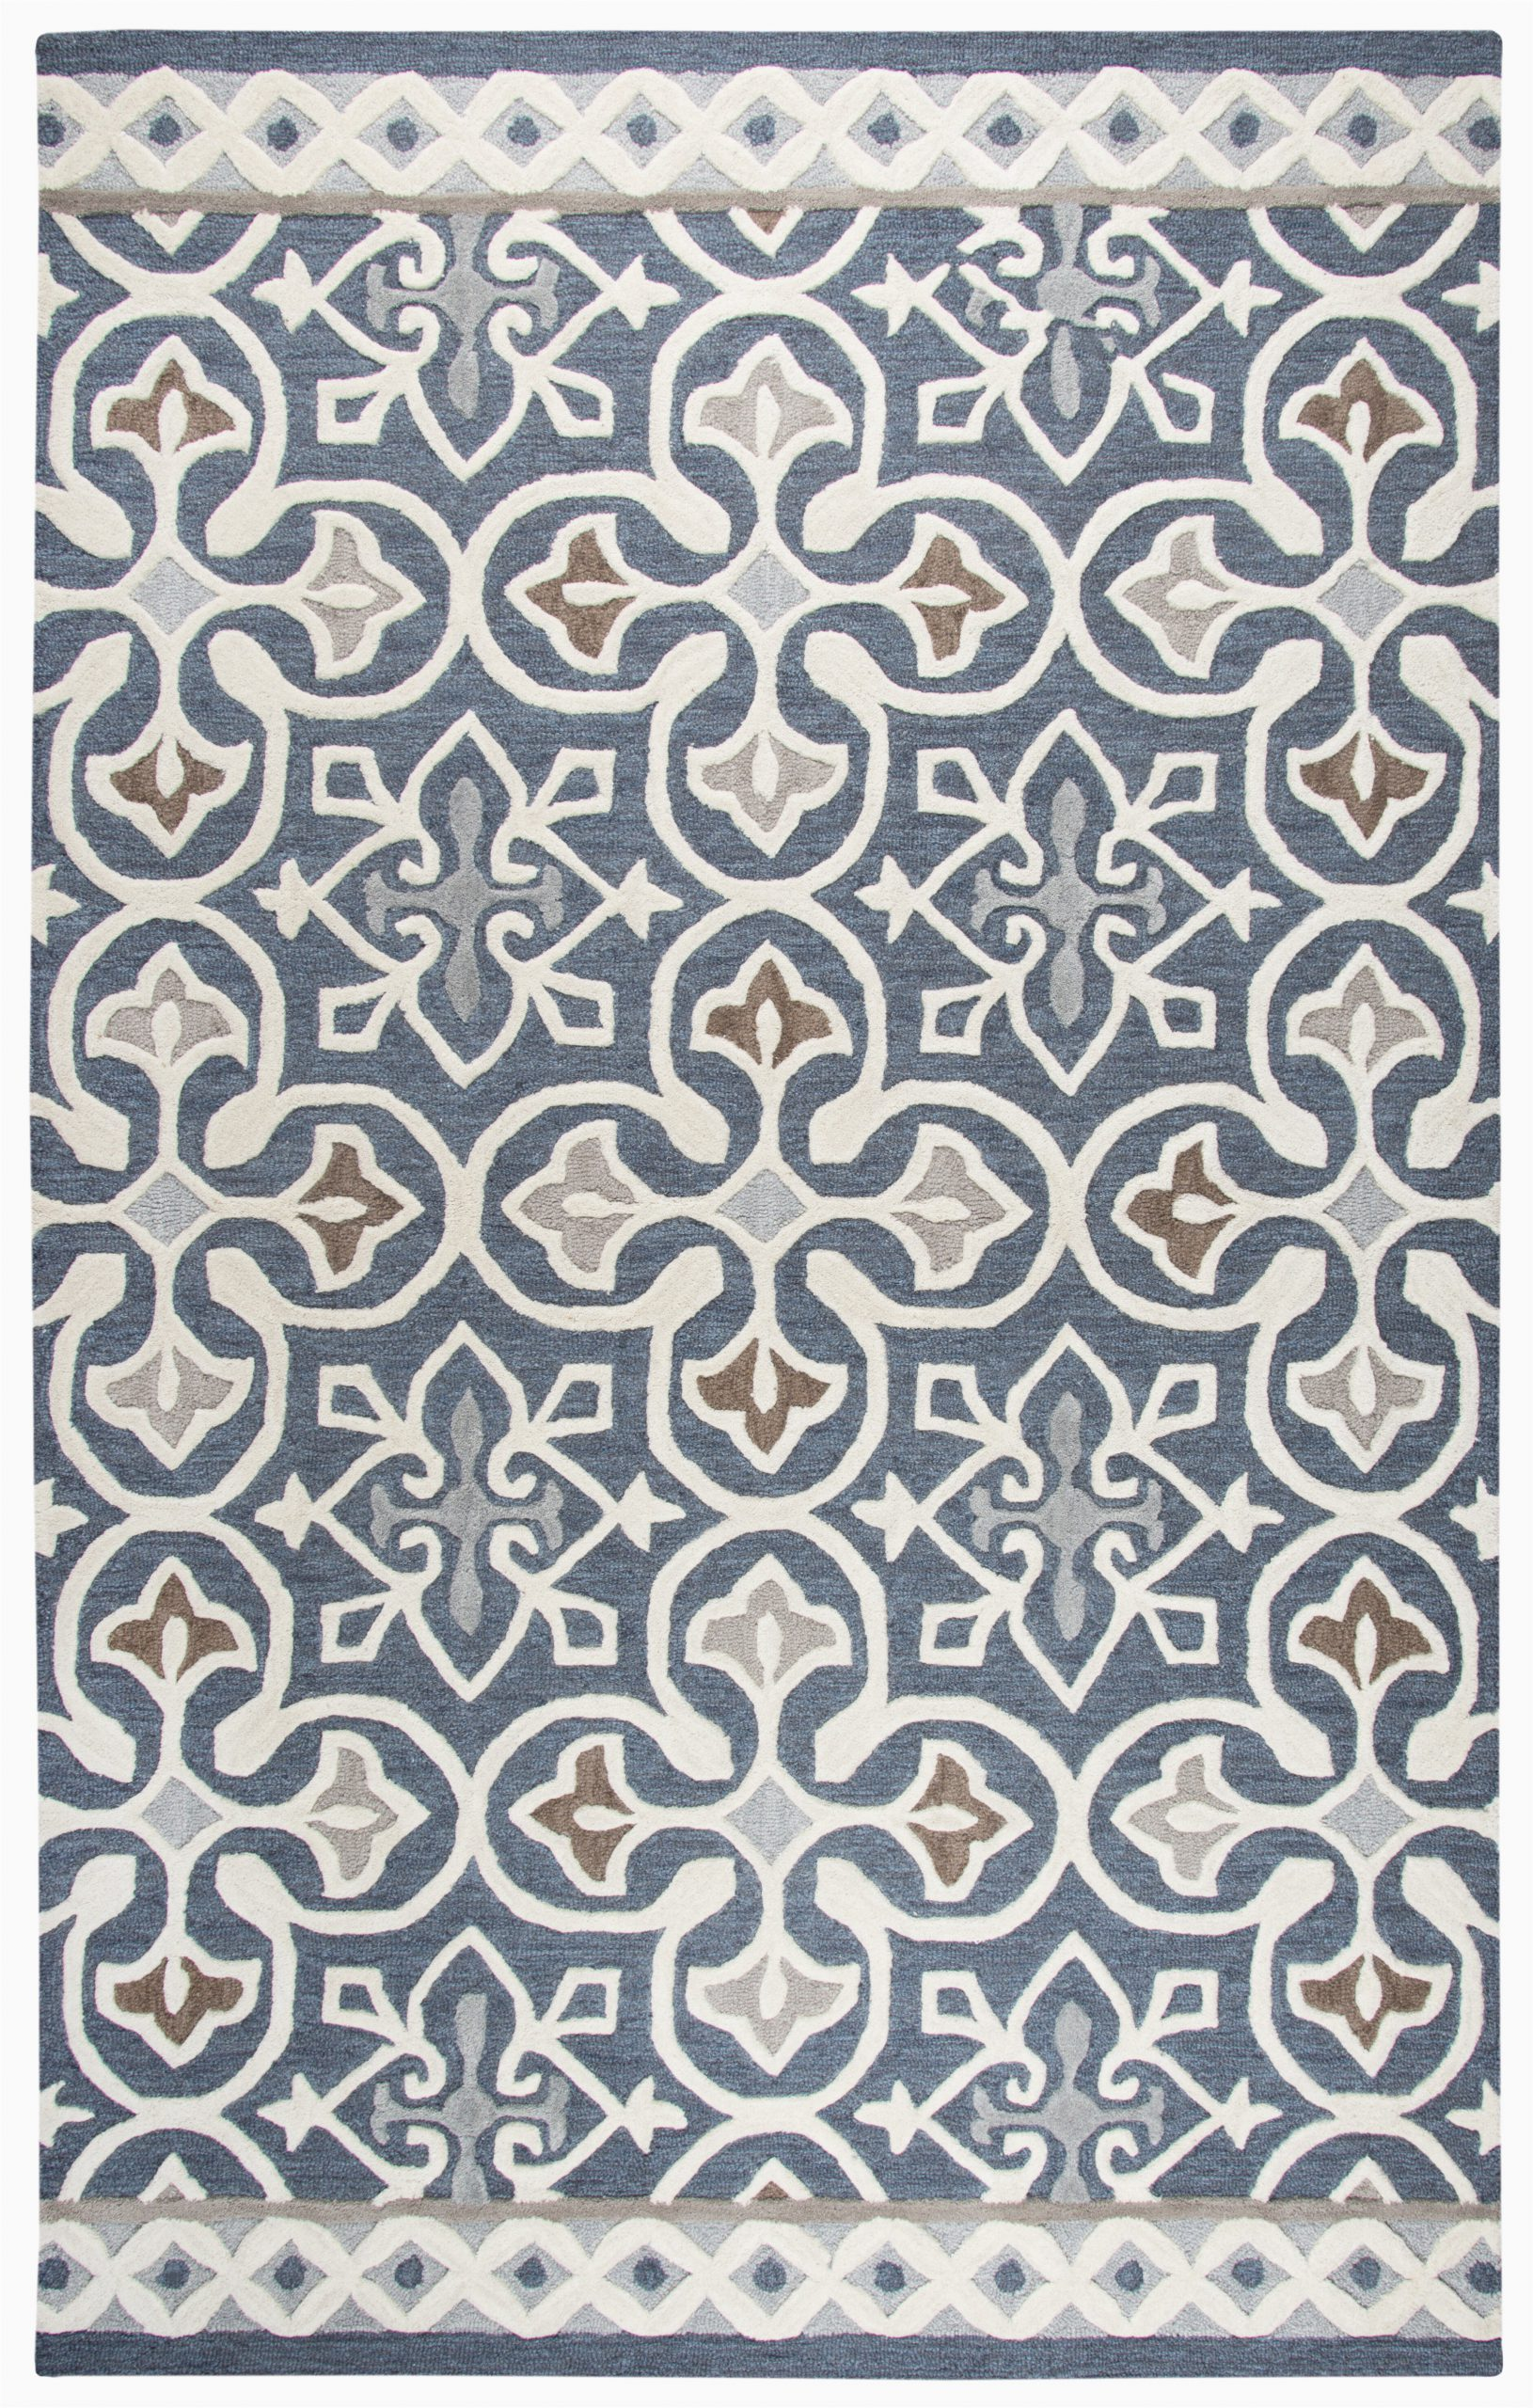 Blue Gray and Taupe area Rug Aurelia Hand Tufted Blue Gray area Rug